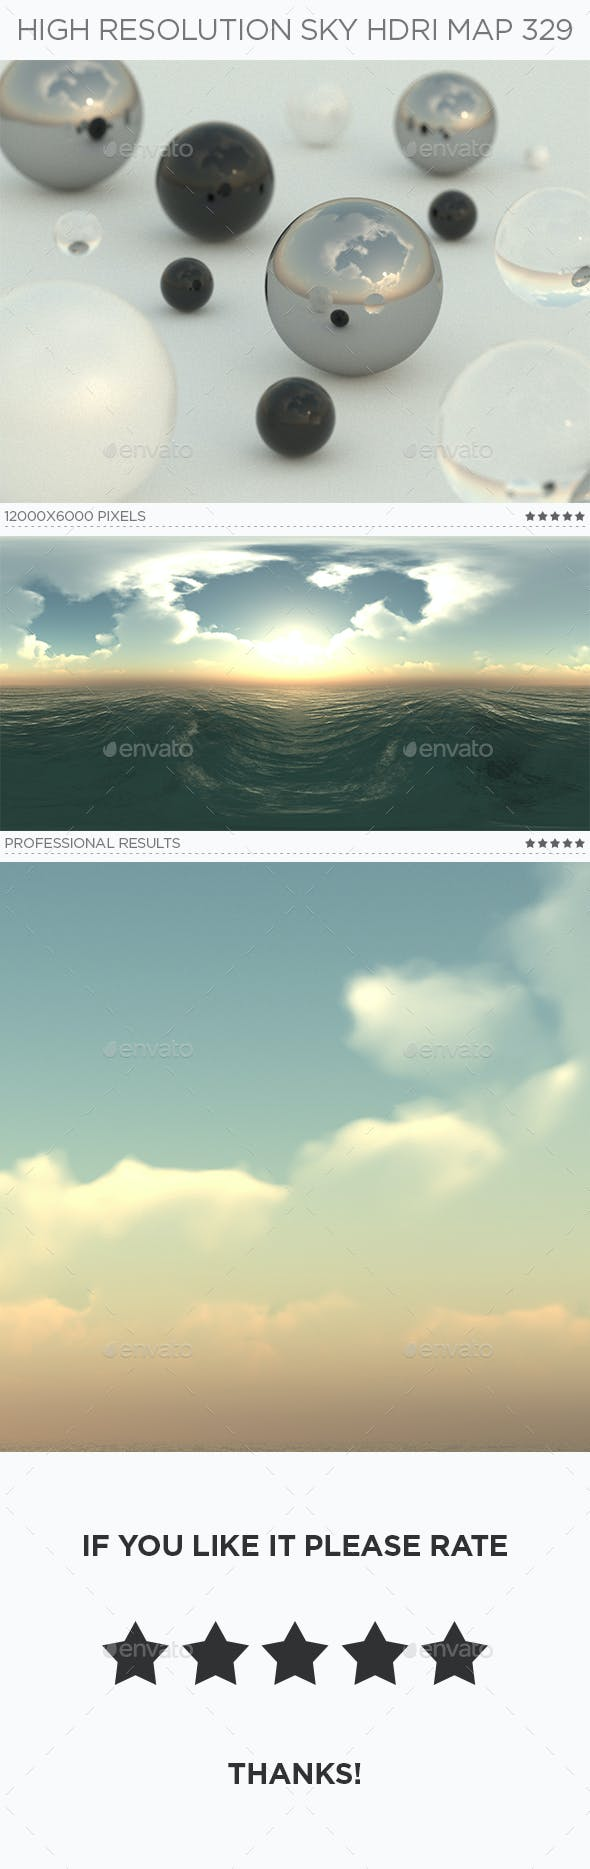 High Resolution Sky HDRi Map 329 - 3DOcean Item for Sale